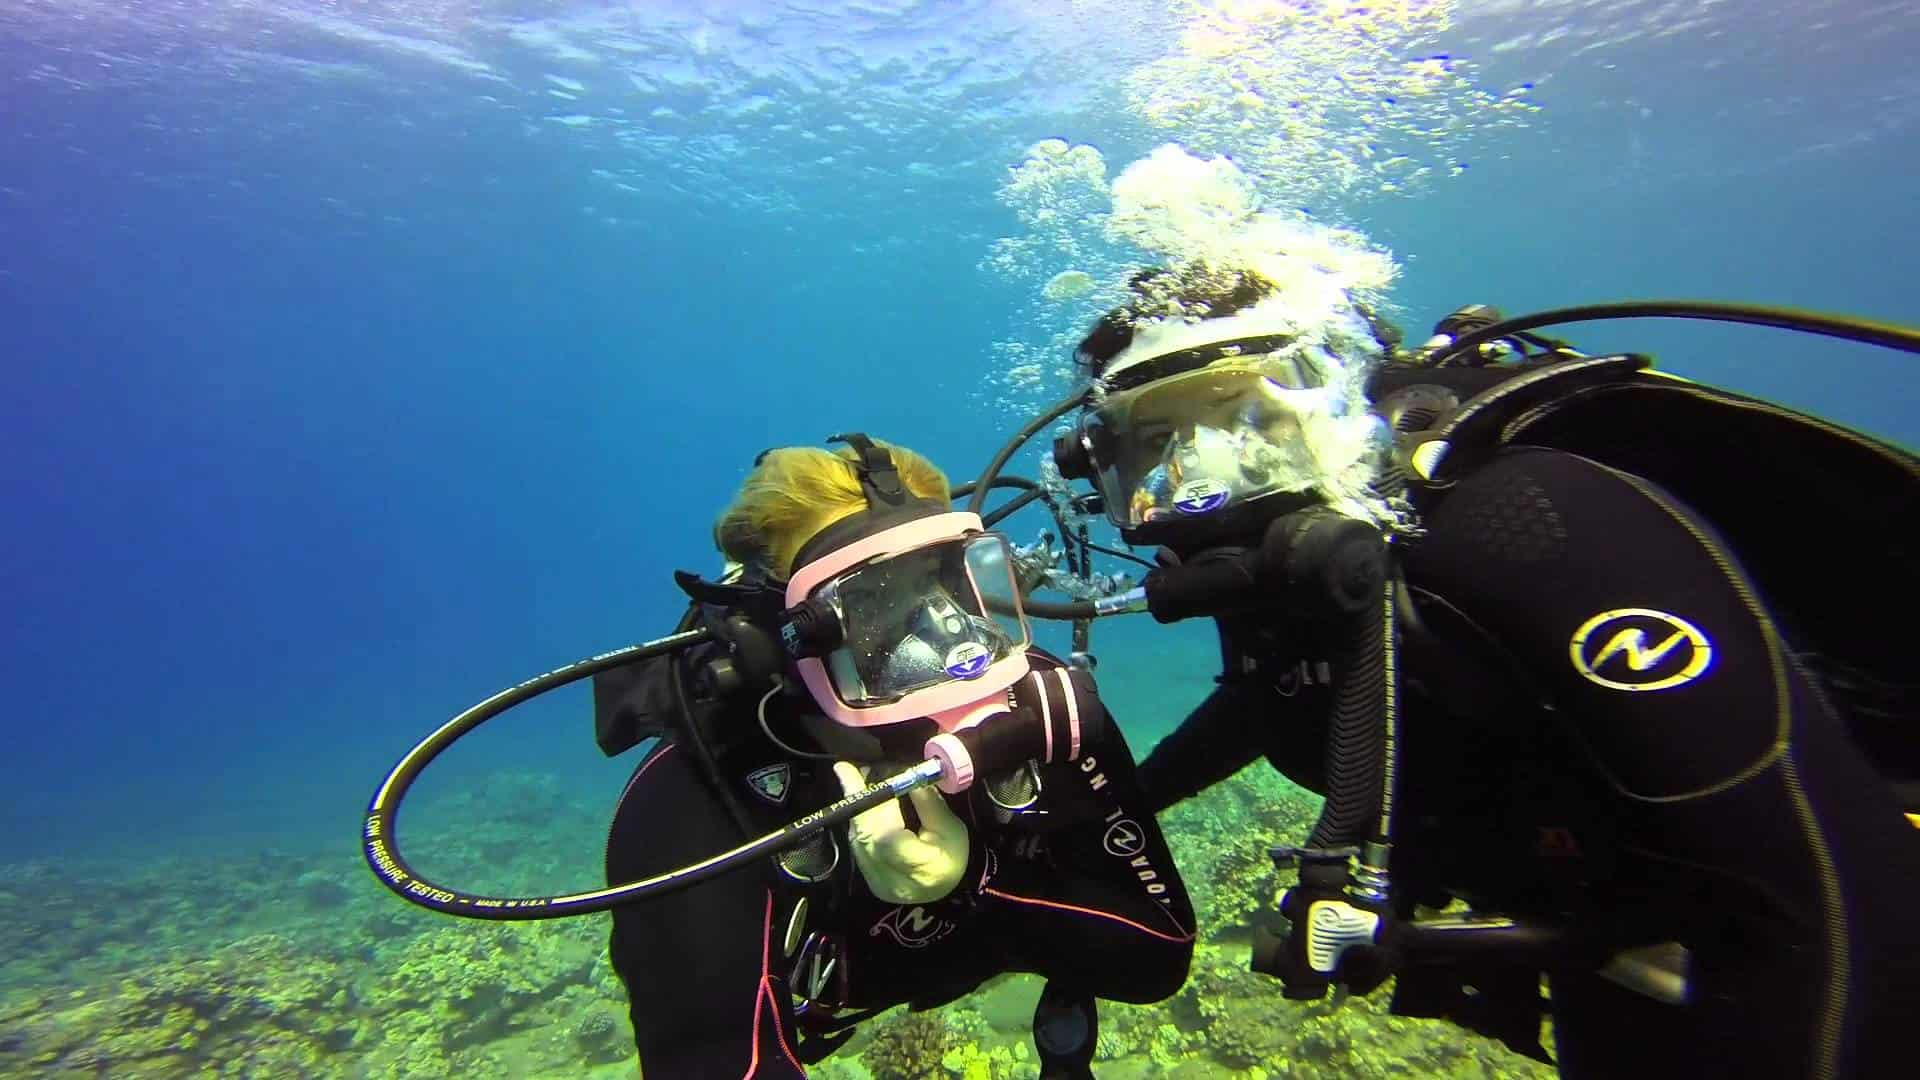 Diving with full face mask